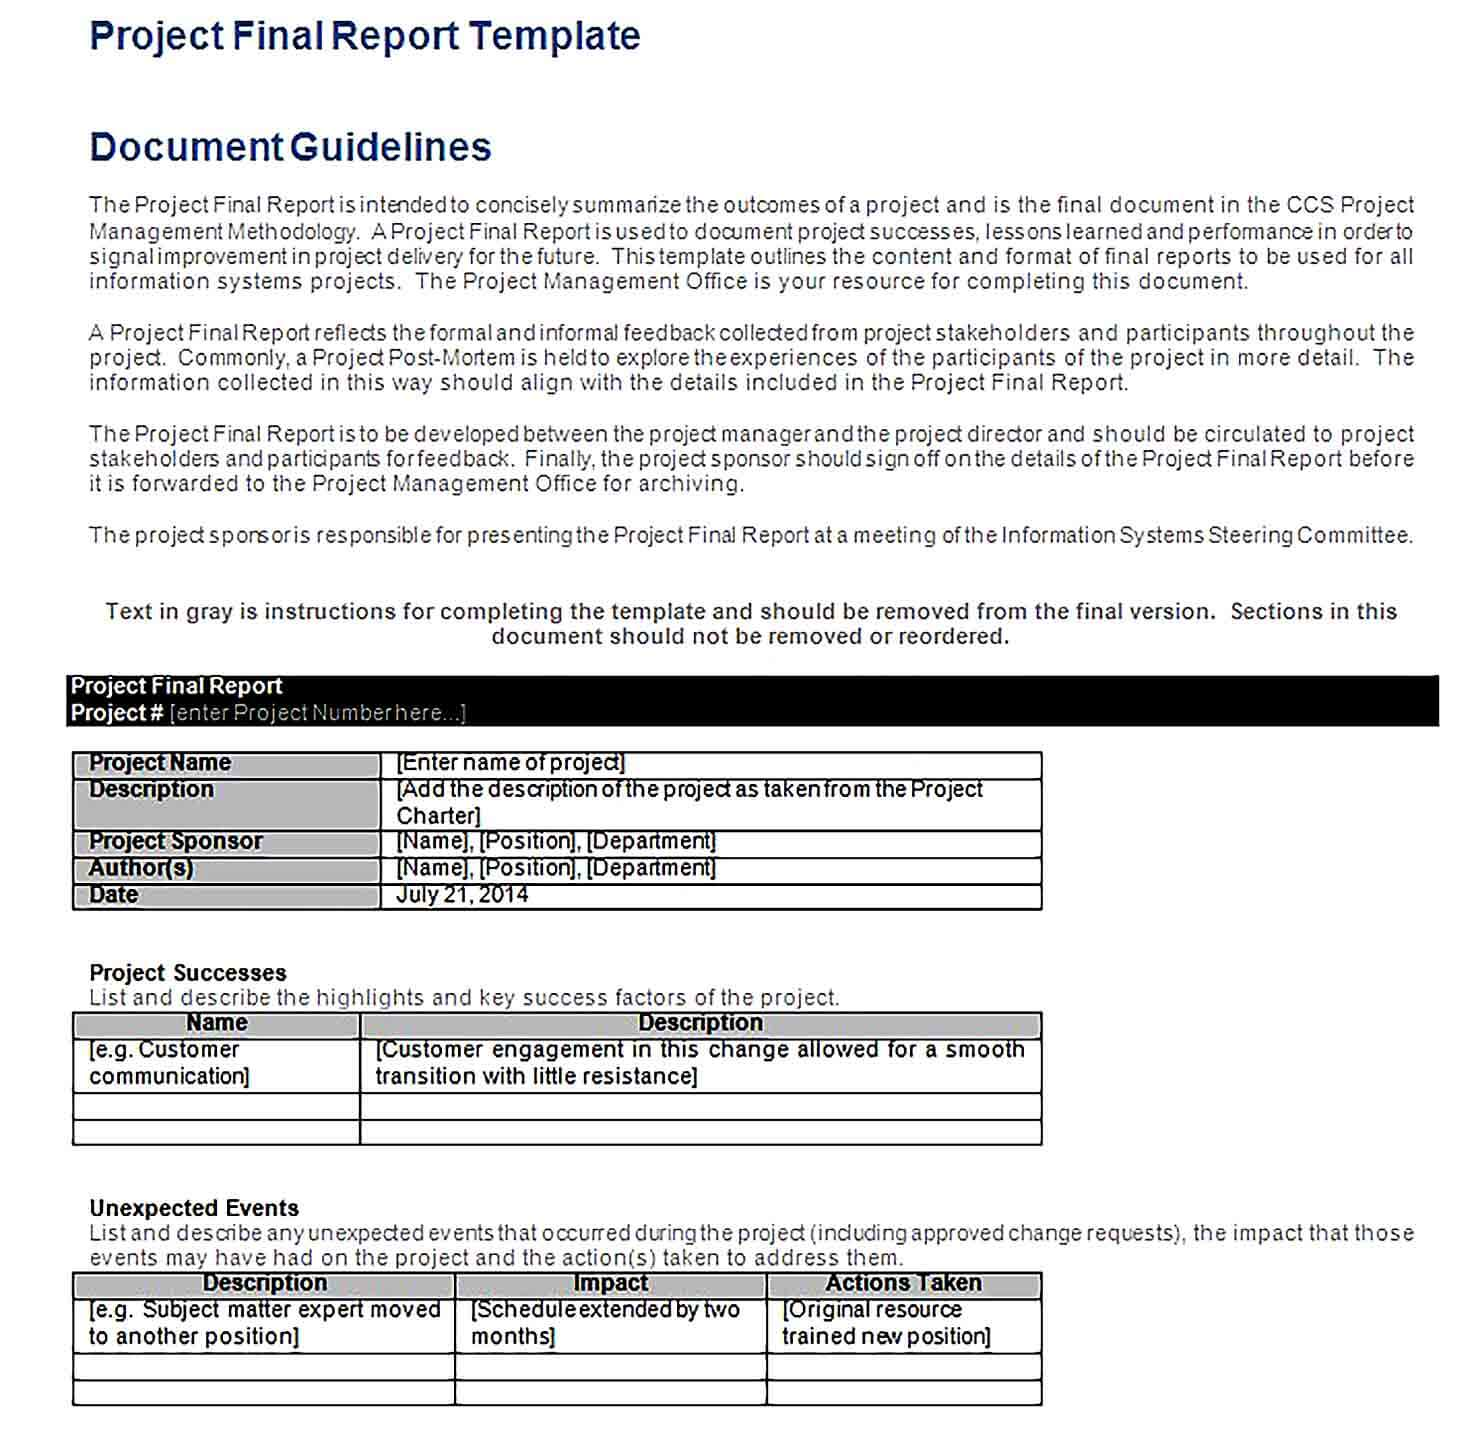 Sample Project Final Report Template